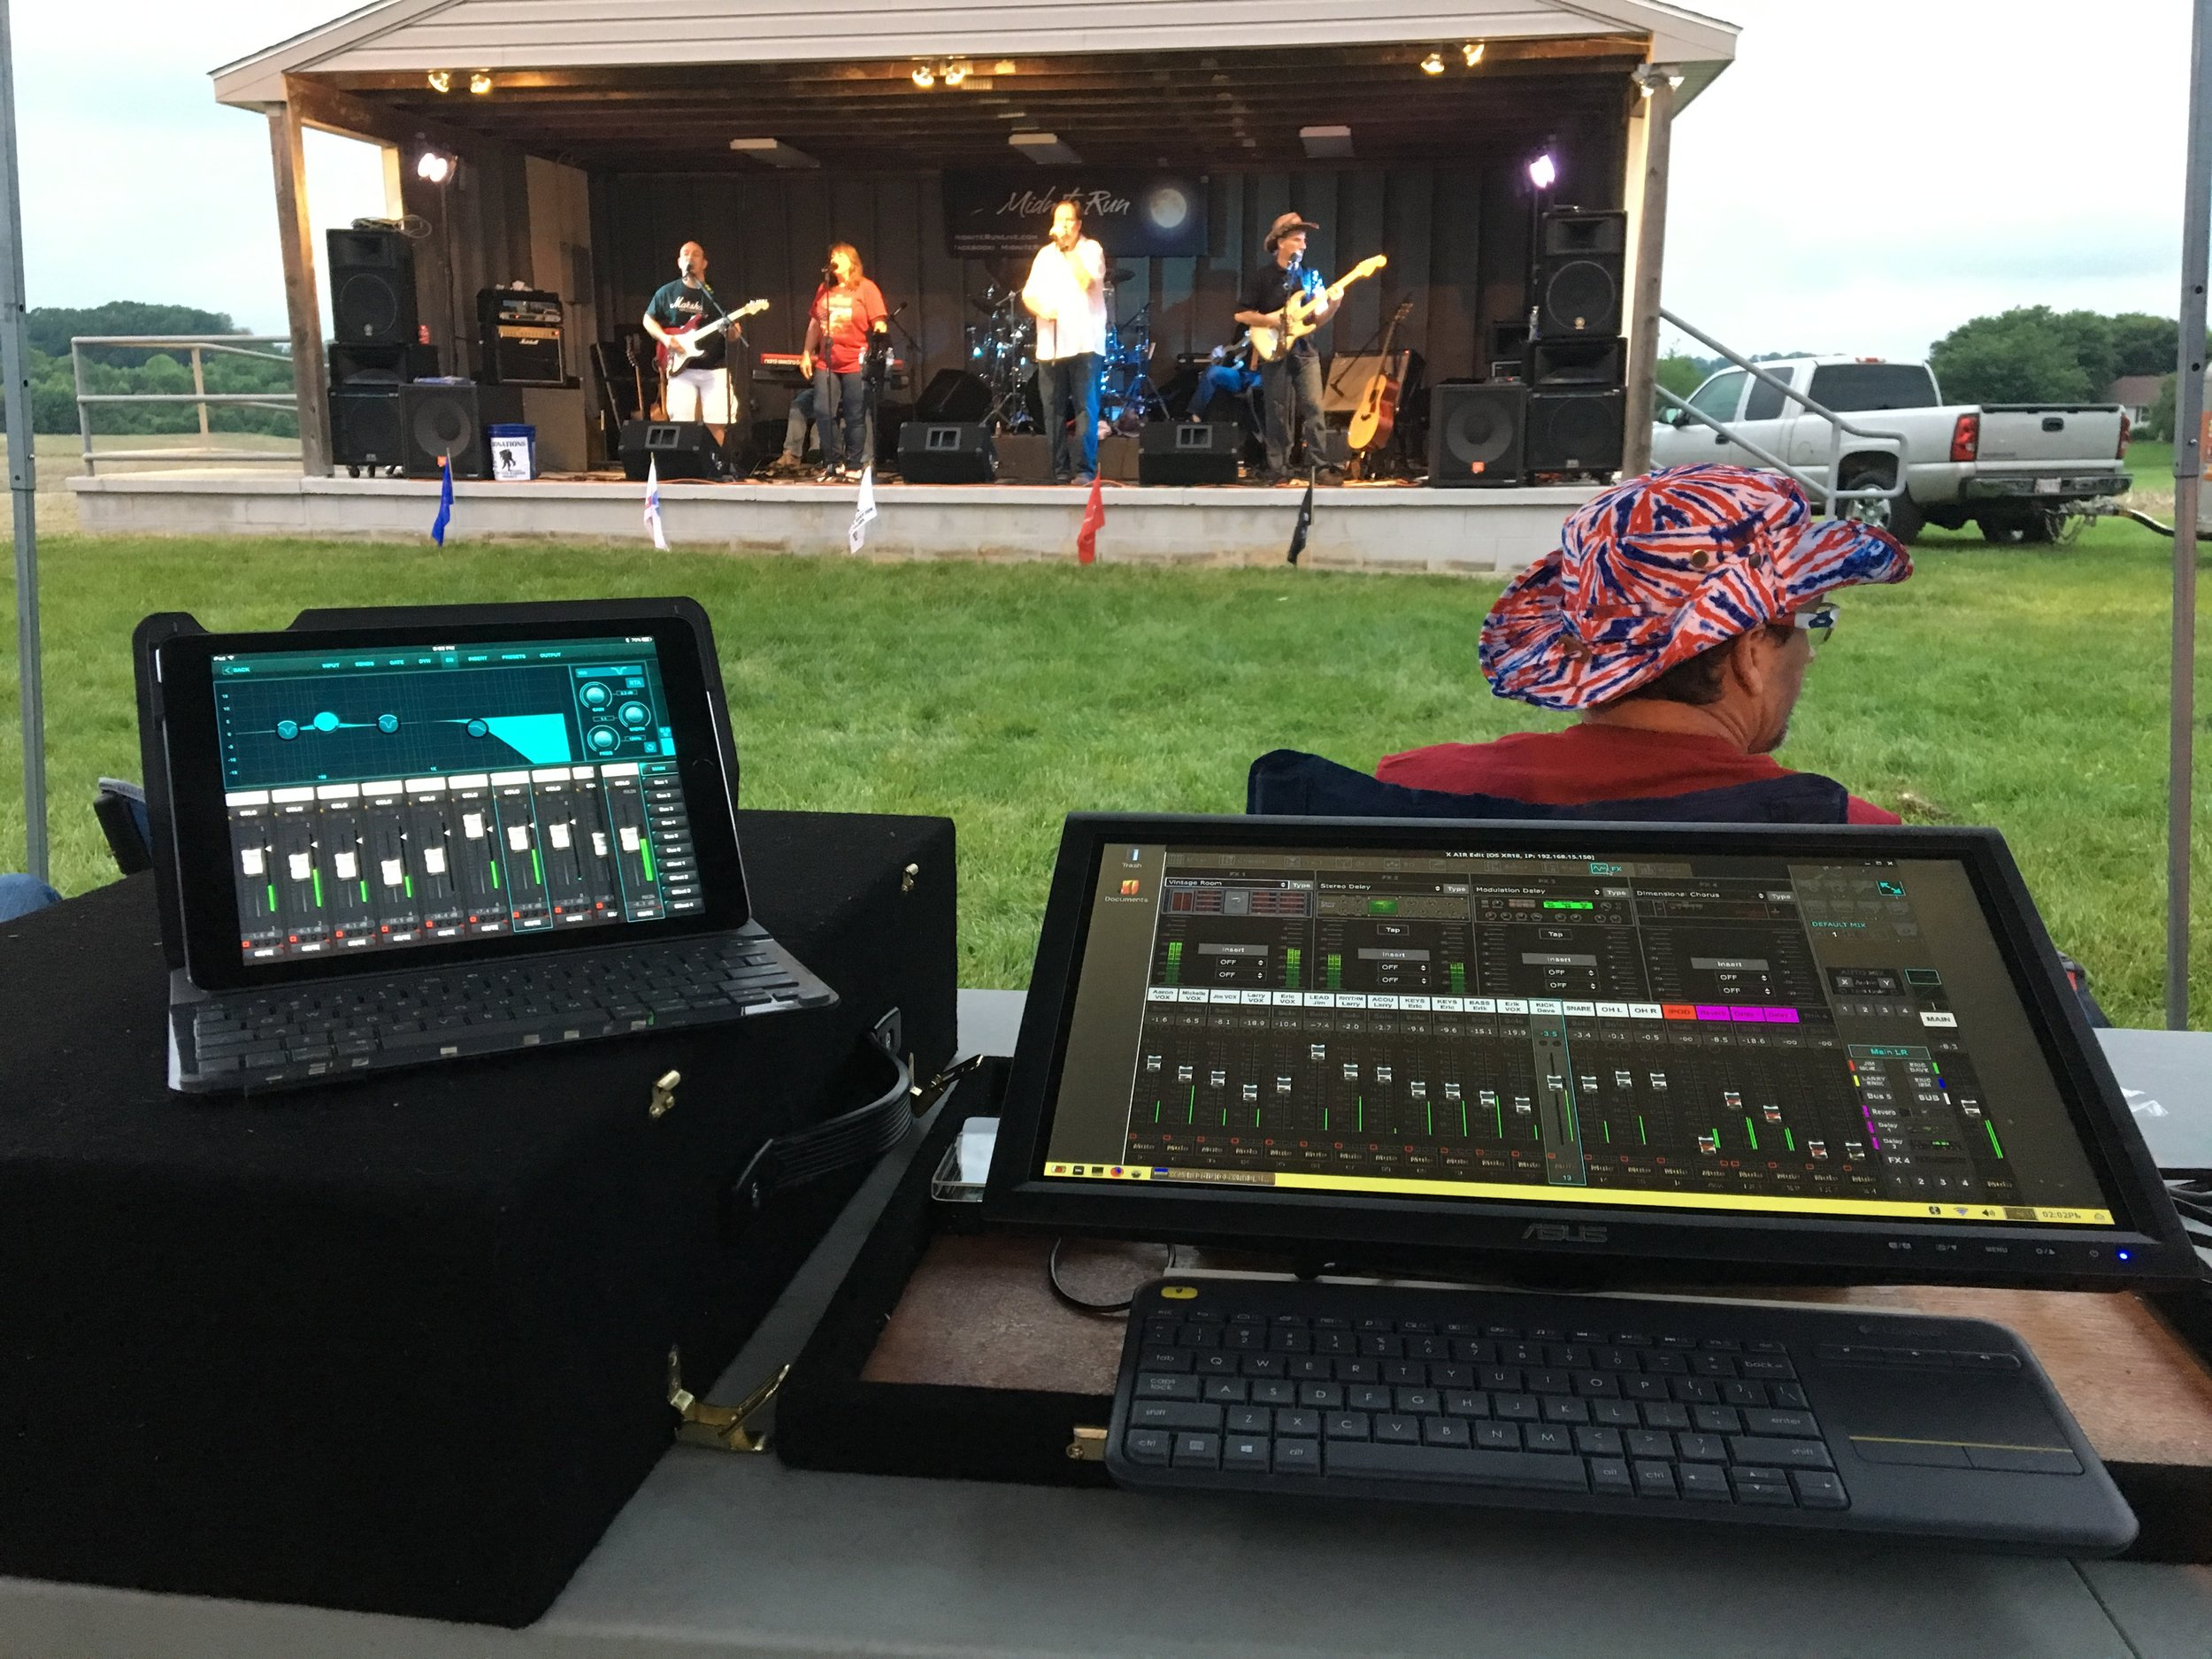 "Mix position for Midnite Run at this year's Gamber Fireman's Carnival. At left is an iPad Air 2 running the latest version of X-Air for iOS. On the right is a Raspberry Pi 3 with an Asus 19.5"" touchscreen monitor and a Logitech wireless keyboard/track pad running X-Air Edit for Raspbian."